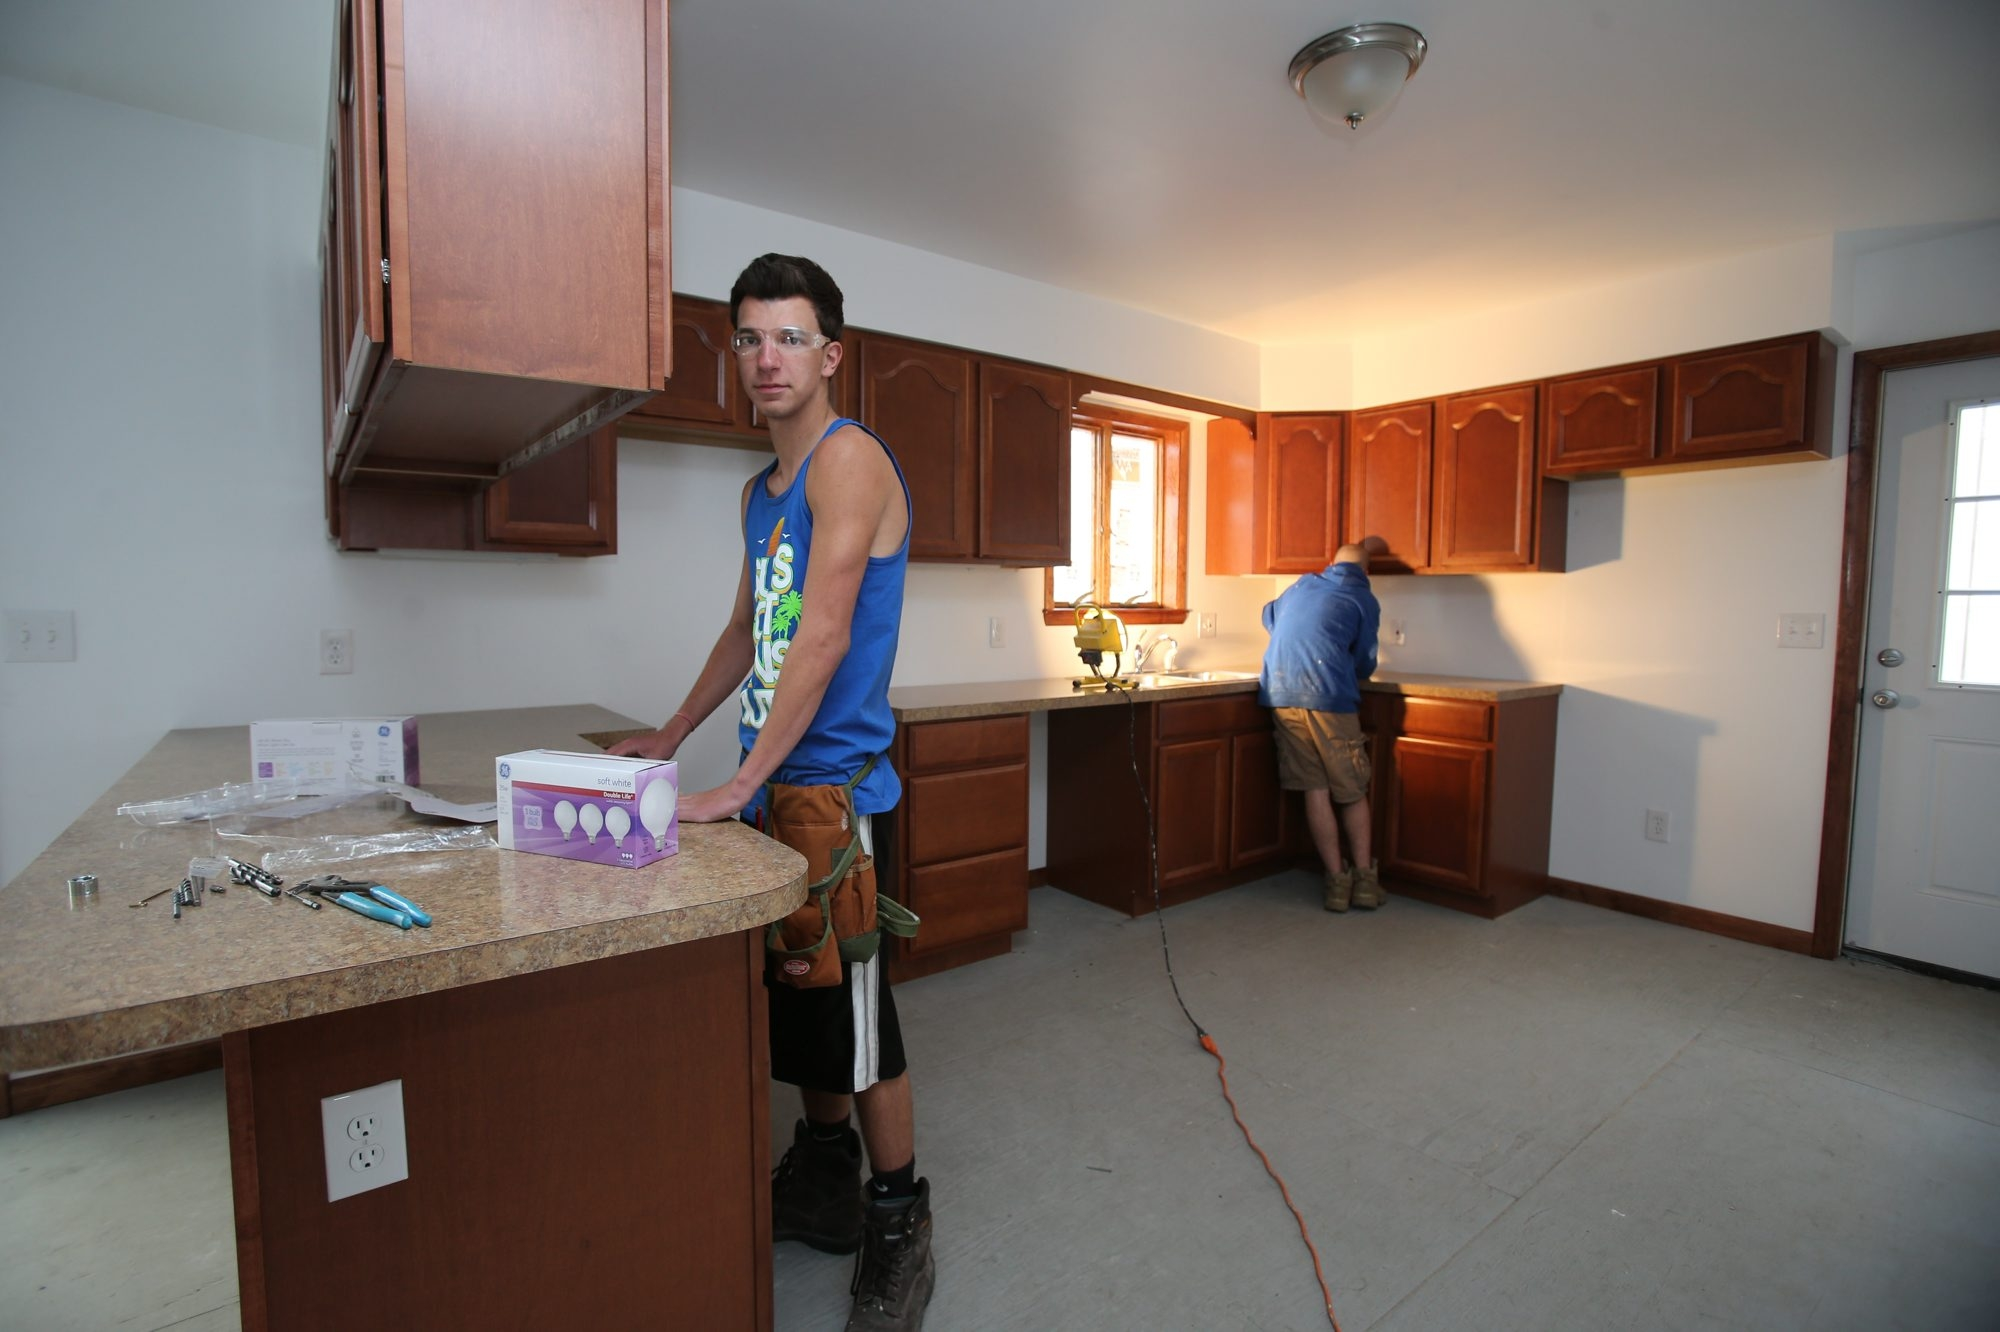 Corey Bruce, 18, left, and Joseph Cicero, 18, both of Lancaster, work Wednesday on the kitchen of a home being built at the Erie 1 BOCES center on Aero Drive in Cheektowaga.